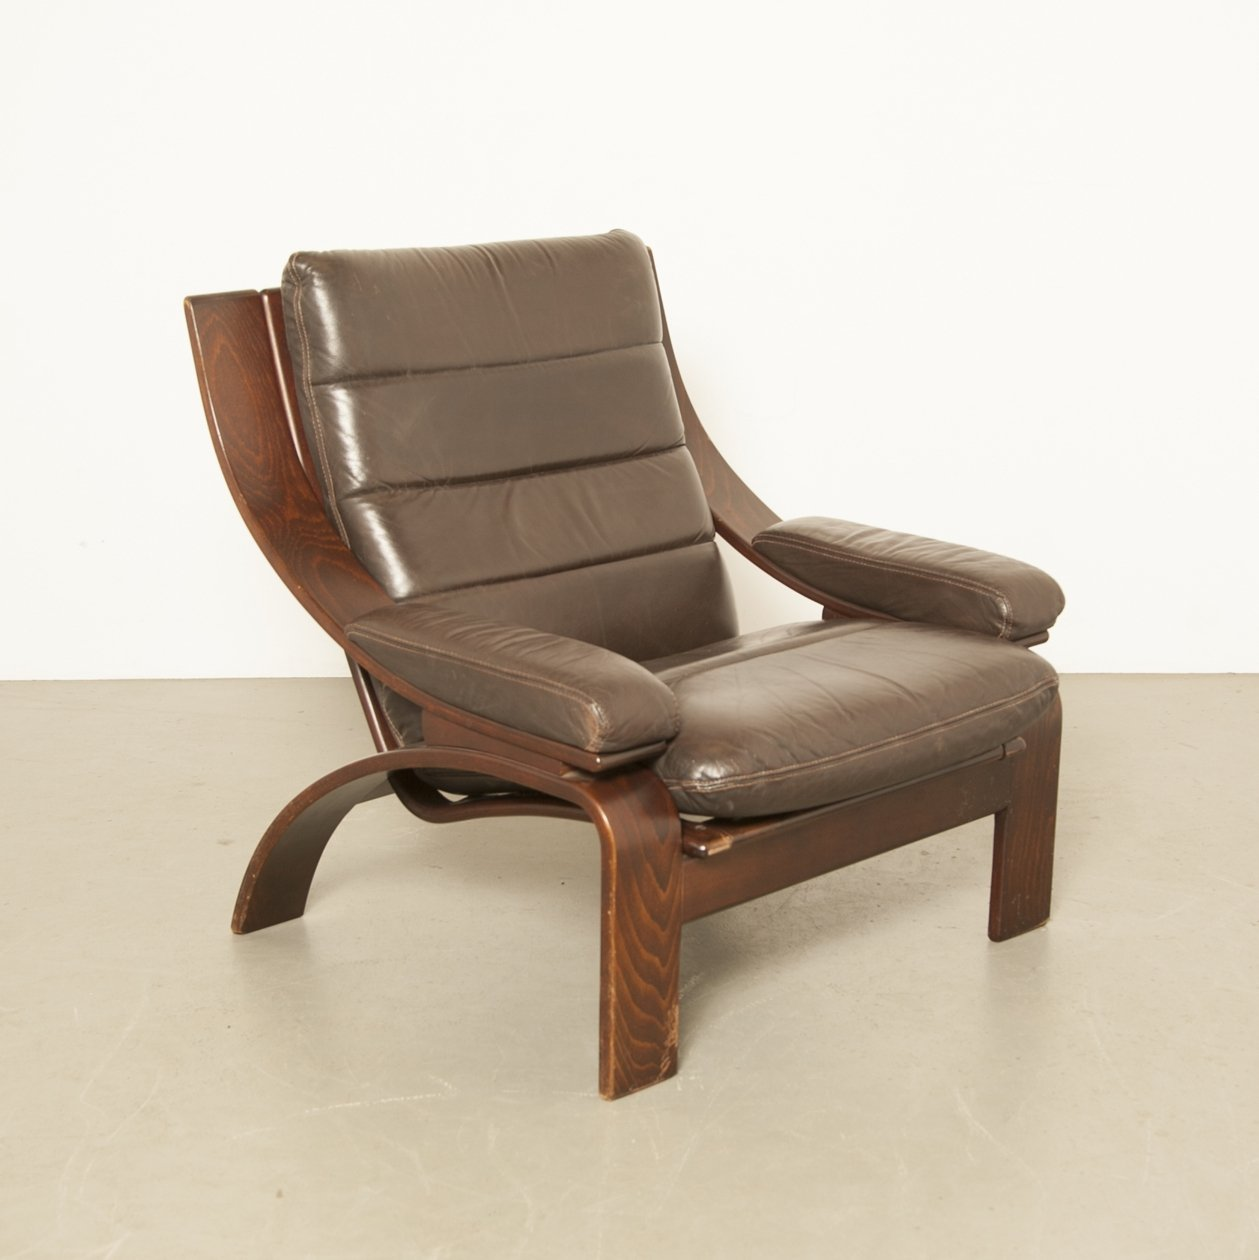 Superb Low Model Danish Armchair By Coja